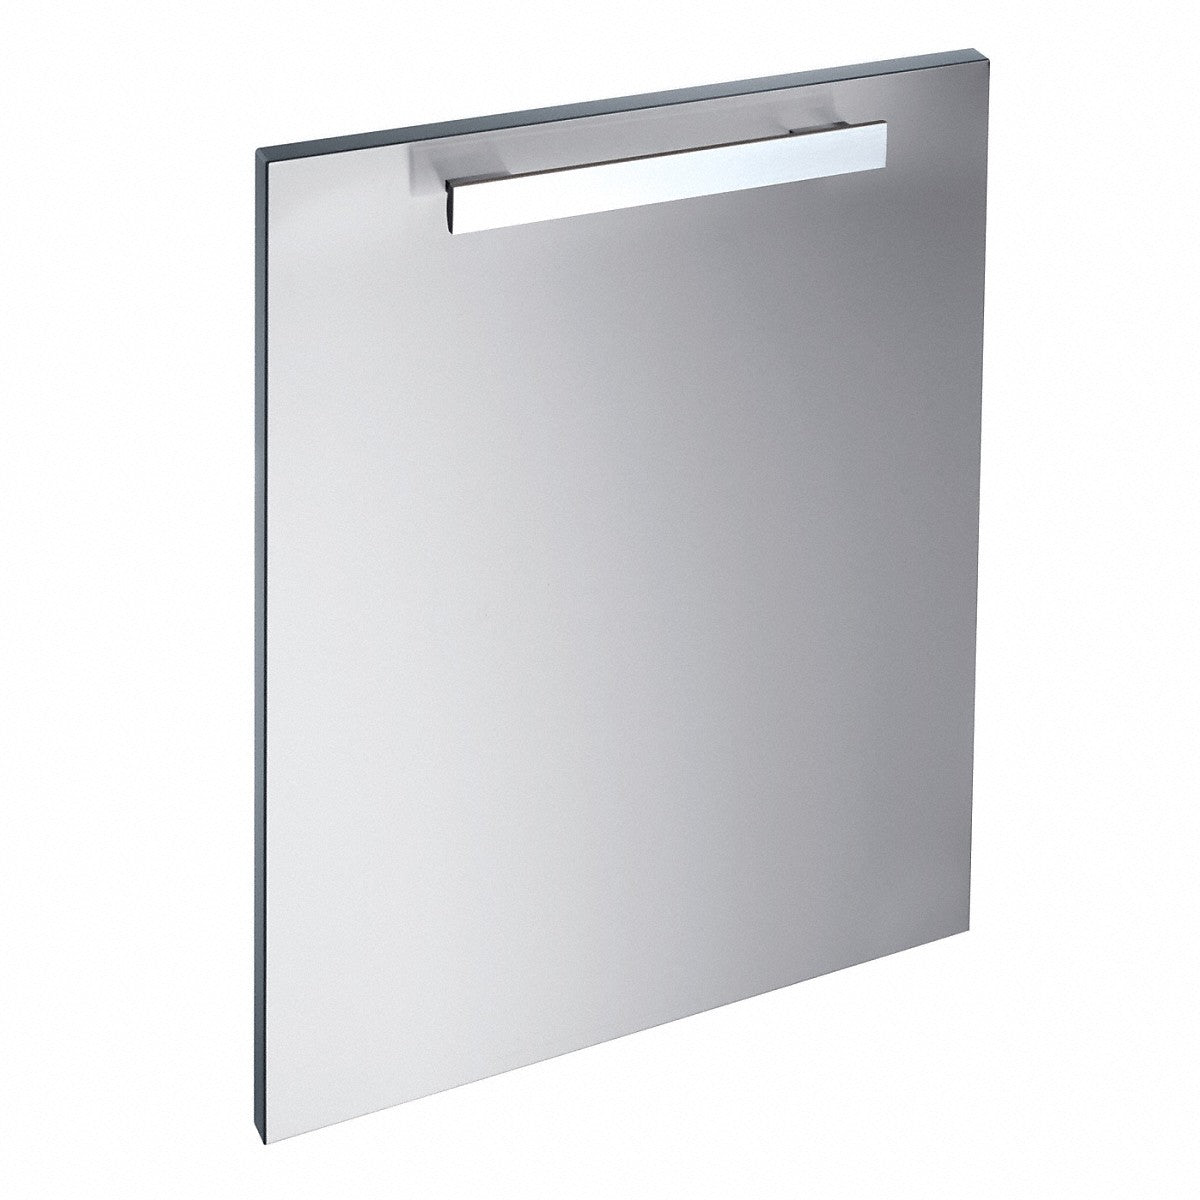 Miele GFVi 613/72-1 60cm Wide CleanSteel Door Panel